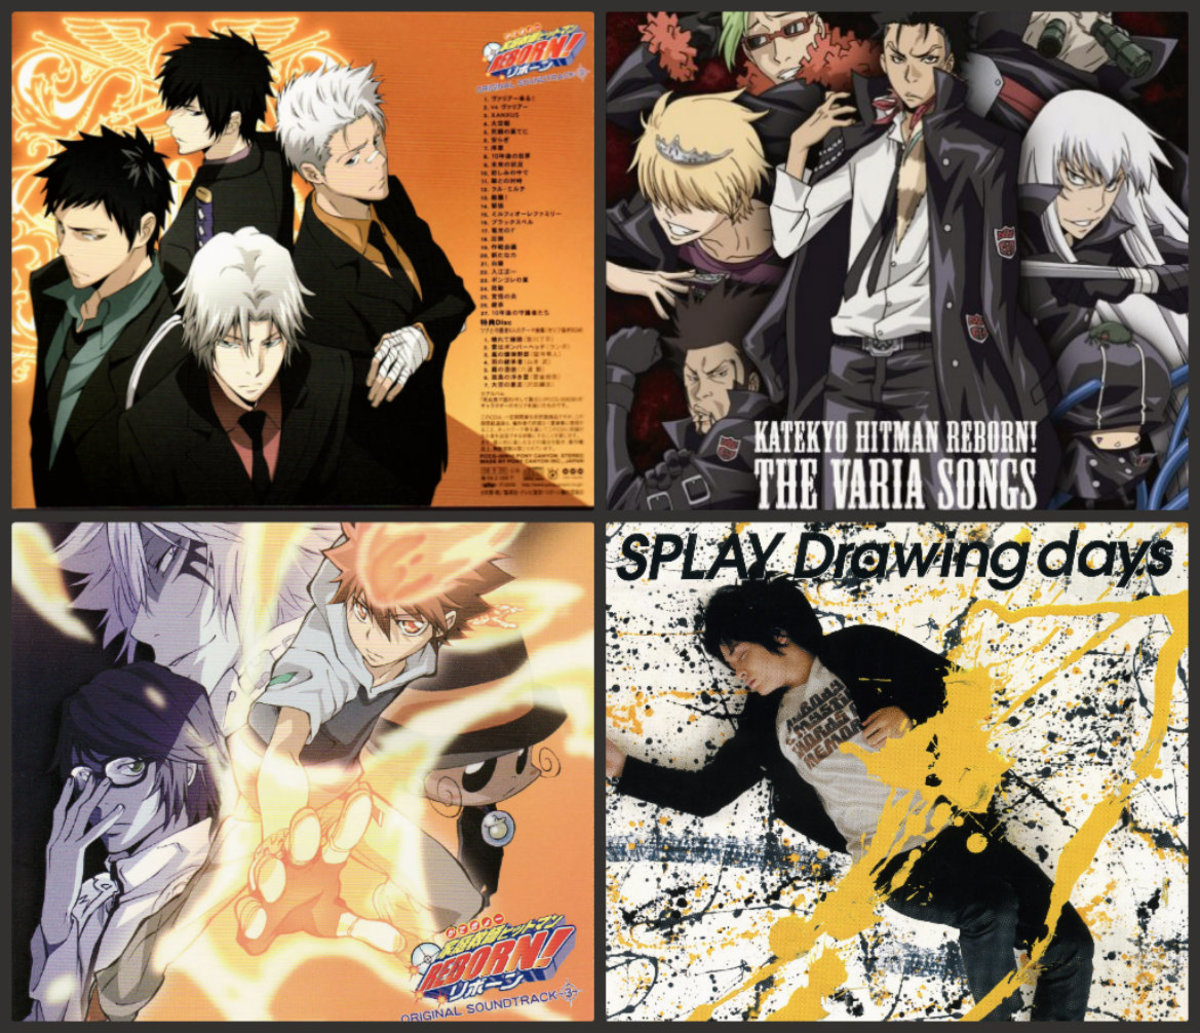 top left http://thatssumanime.files.wordpress.com/2009/03/katekyo-hitman-reborn-ost-back-cover.jpg?w=480&h=412 top right http://www.downloadost.com/ost/big-kateikyoushi-hitman-reborn-character-song-album-the-varia-songs-ost.jpg